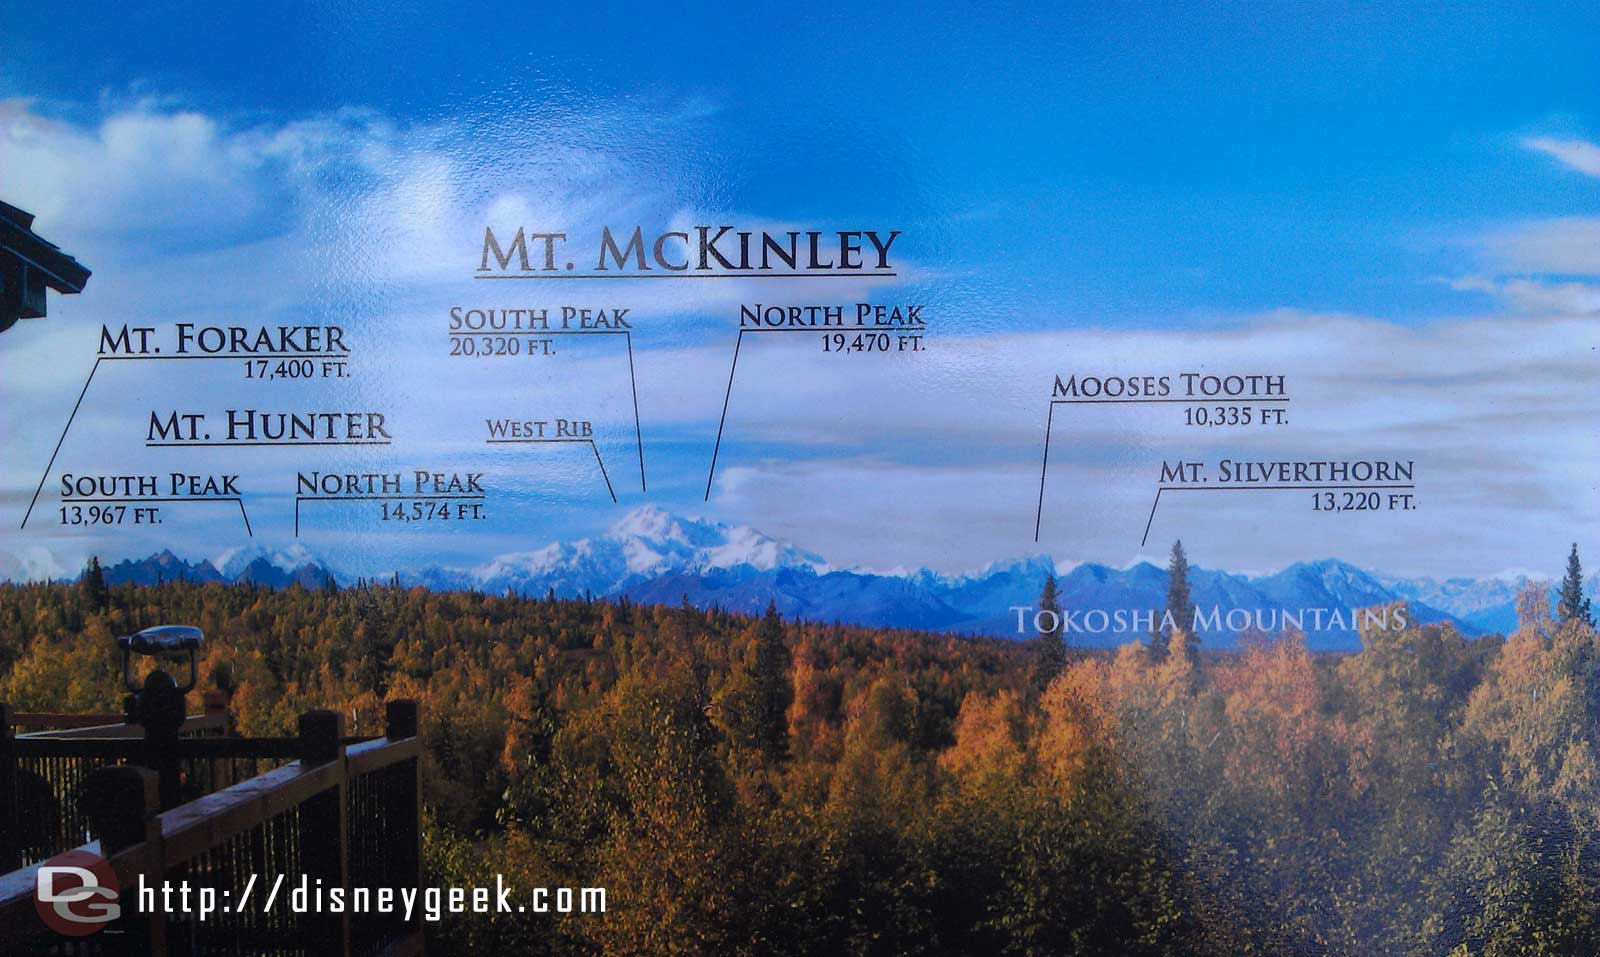 A map showing the peaks and heights Mt McKinley #Alaska